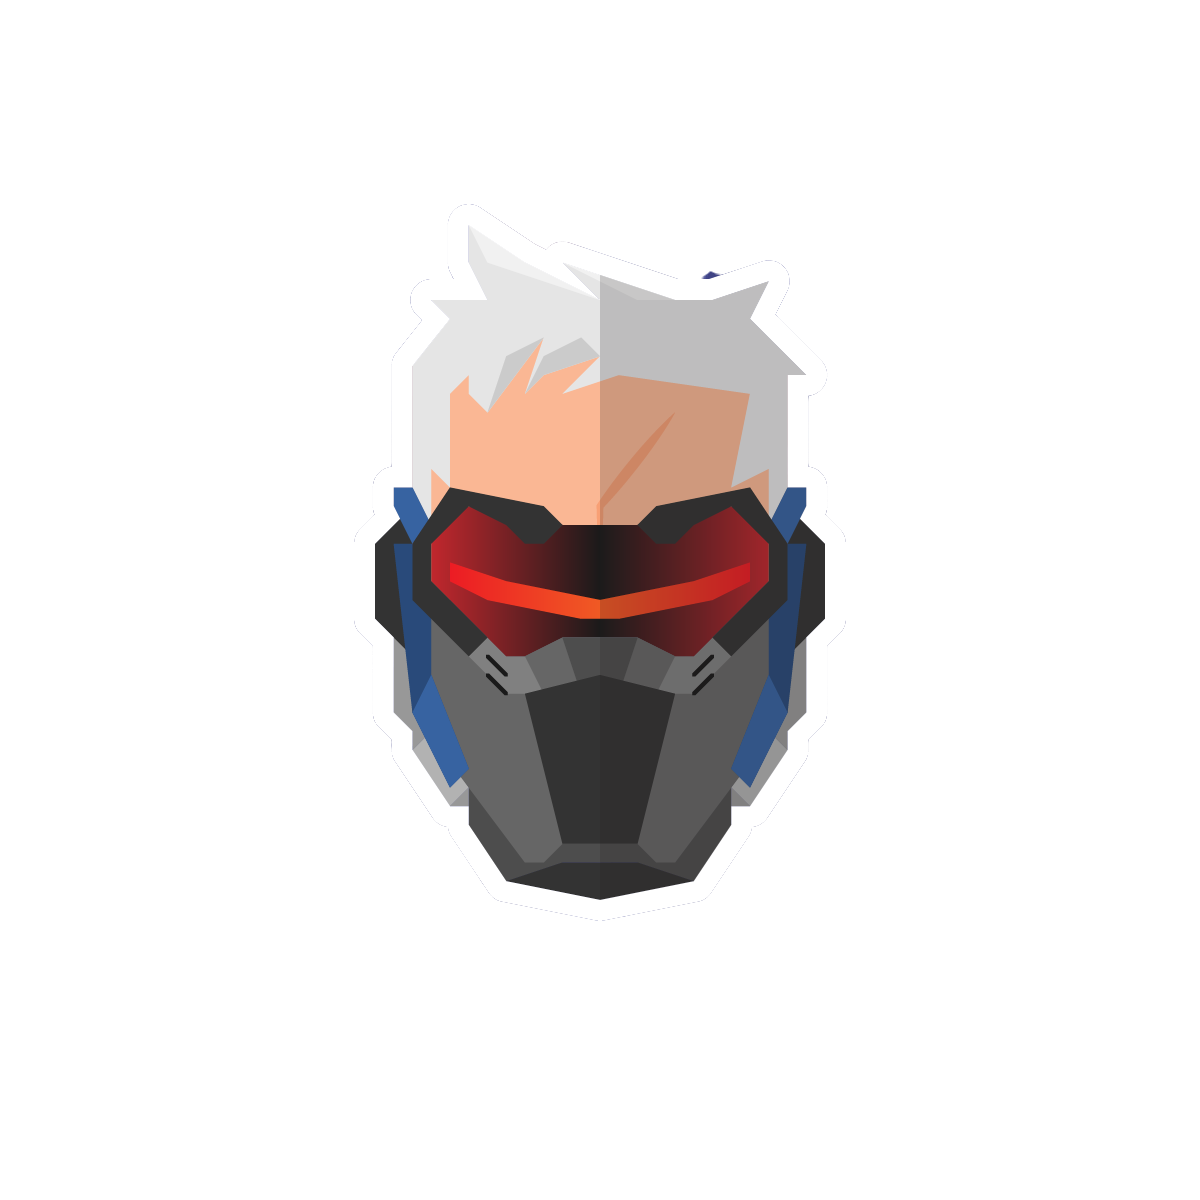 The Heroes Of Overwatch Sticker Pack messages sticker-5